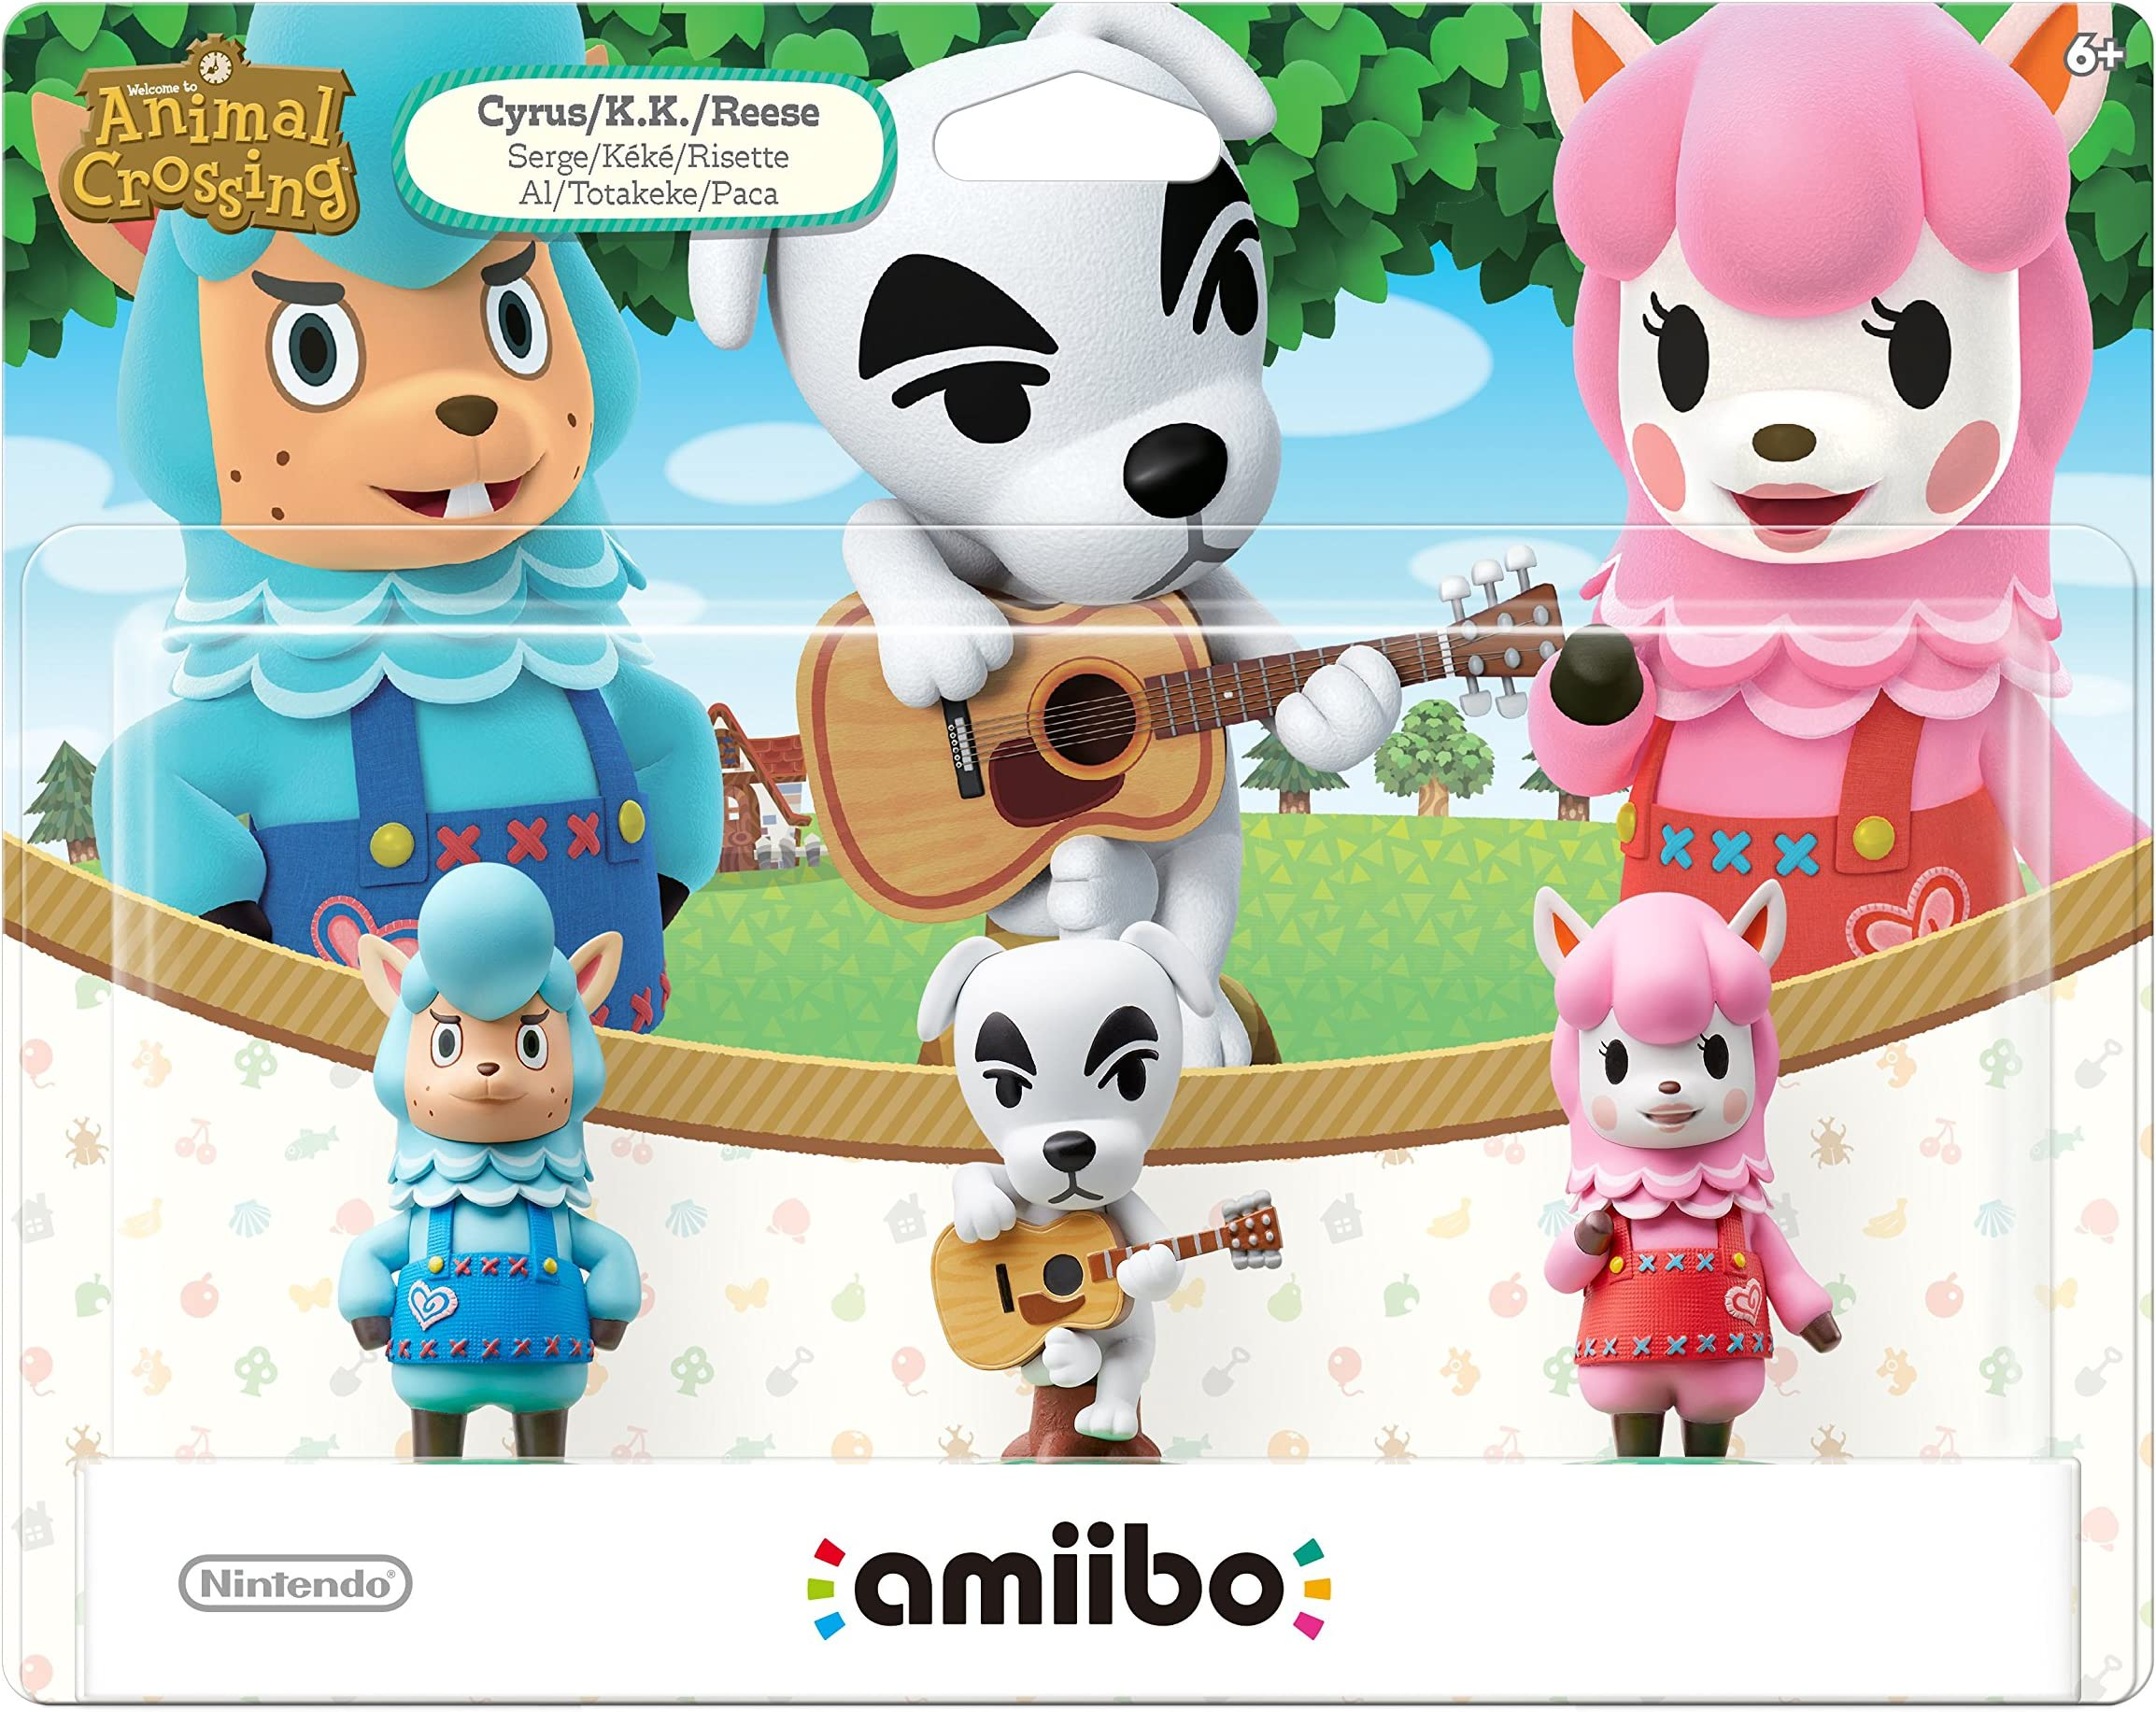 Animal crossing community giveaways for kids